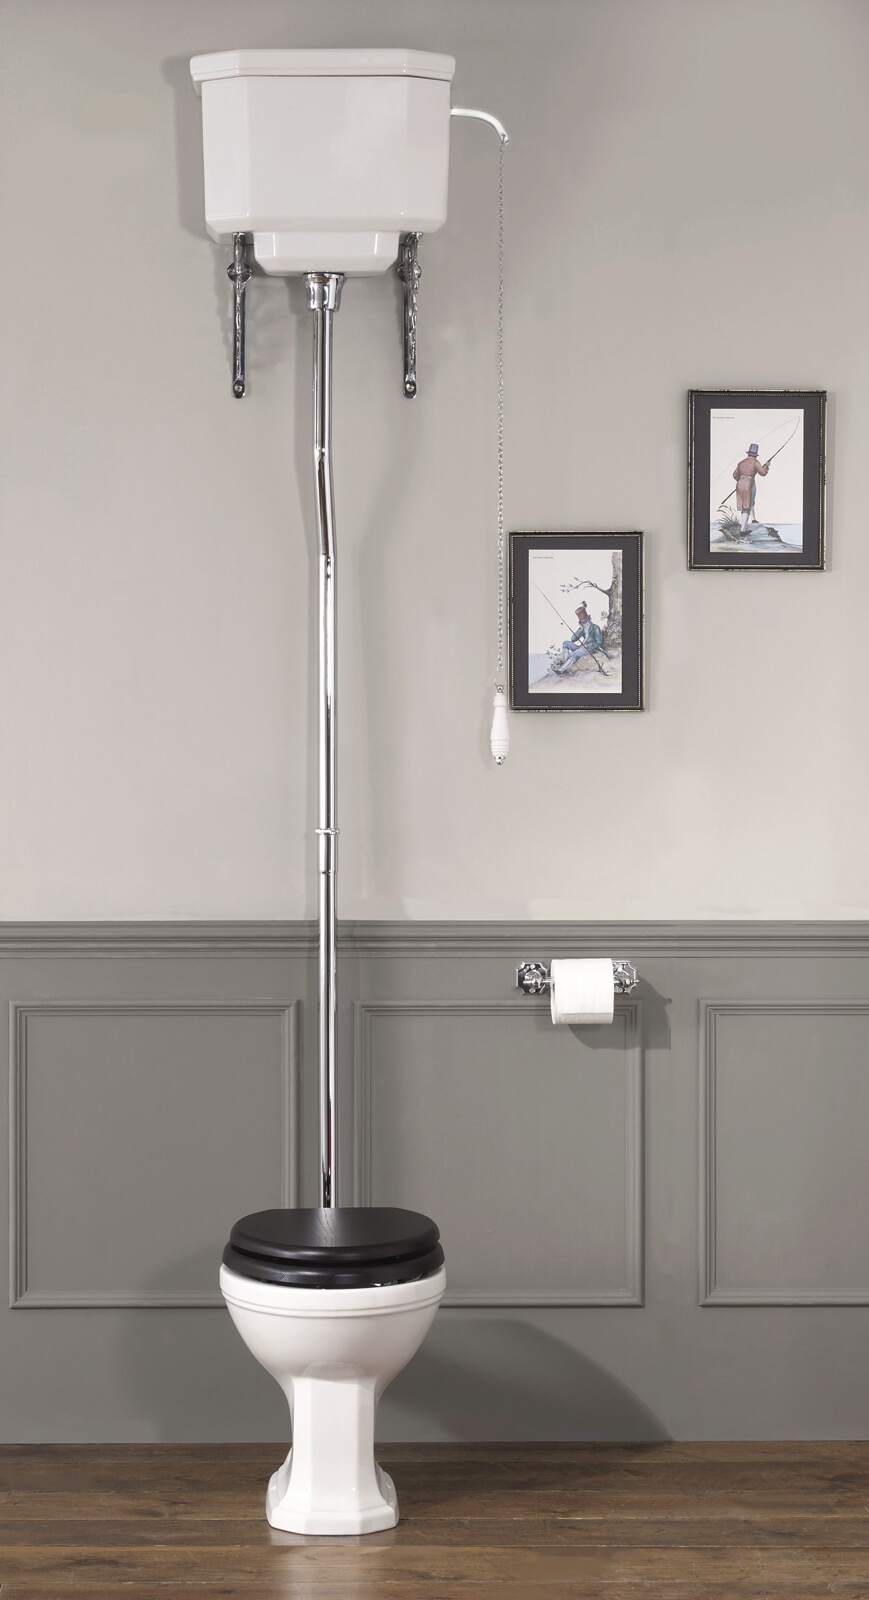 Silverdale Empire High Level WC Pan With Cistern And